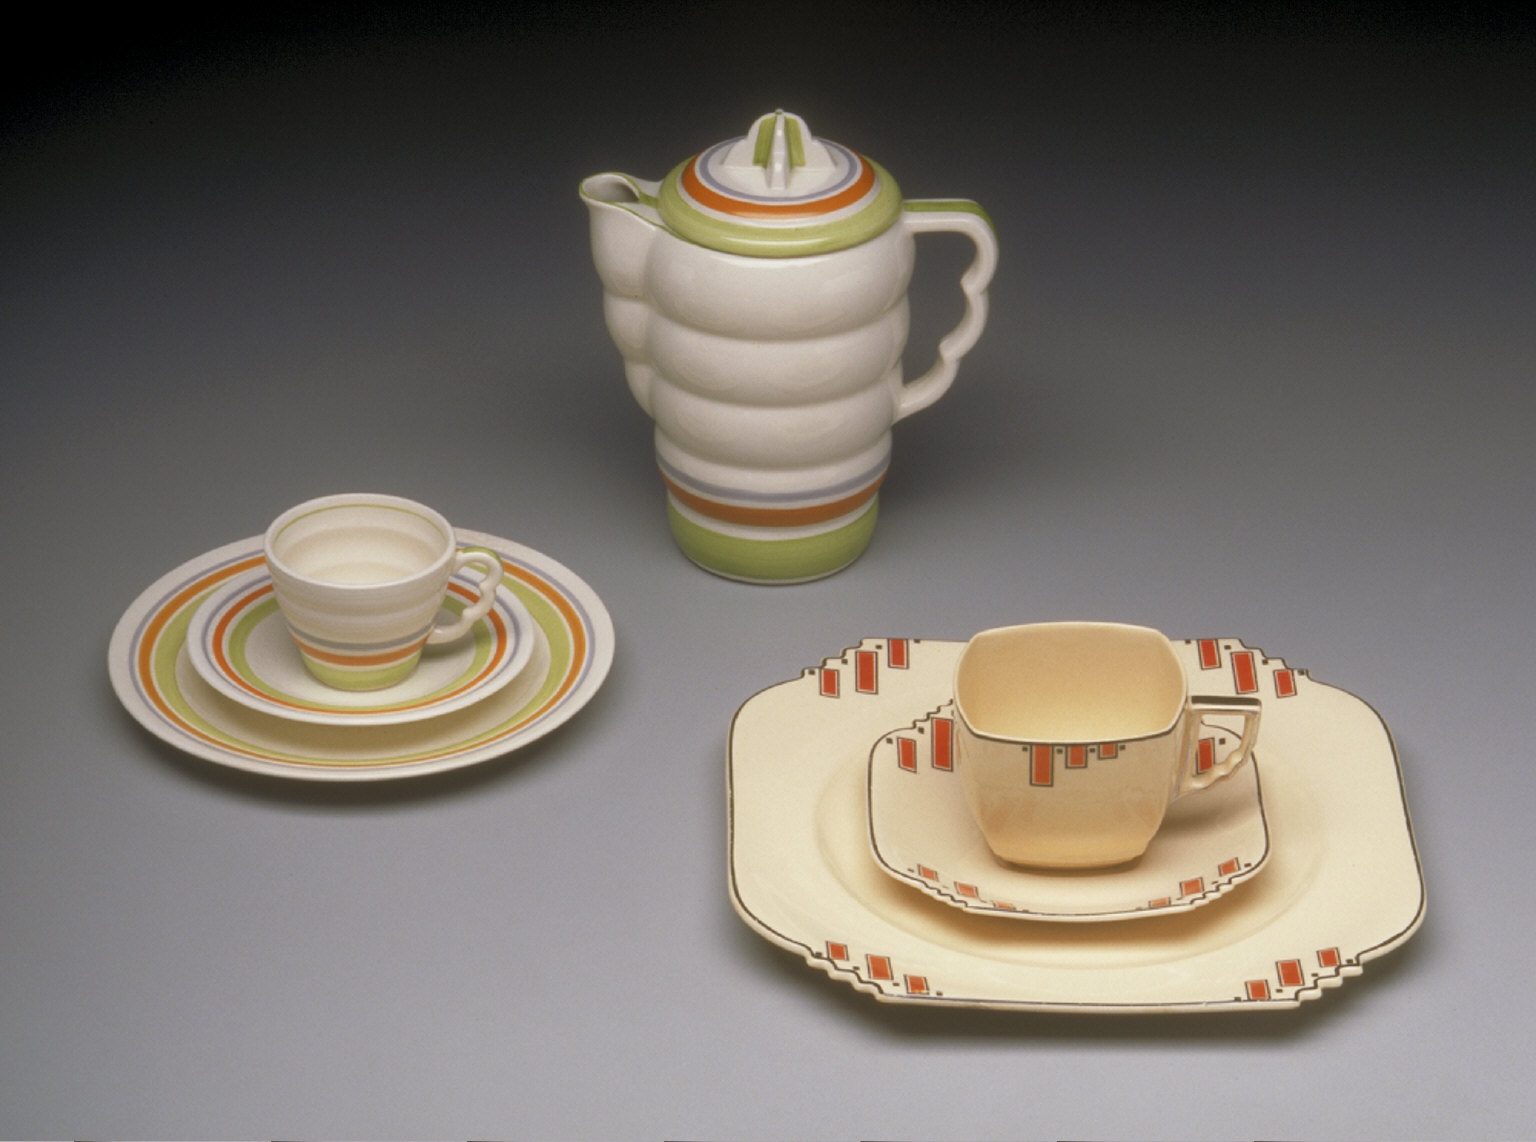 'The Aristocrat' shape coffee set with 'Ripple' pattern decoration (cup and saucer)